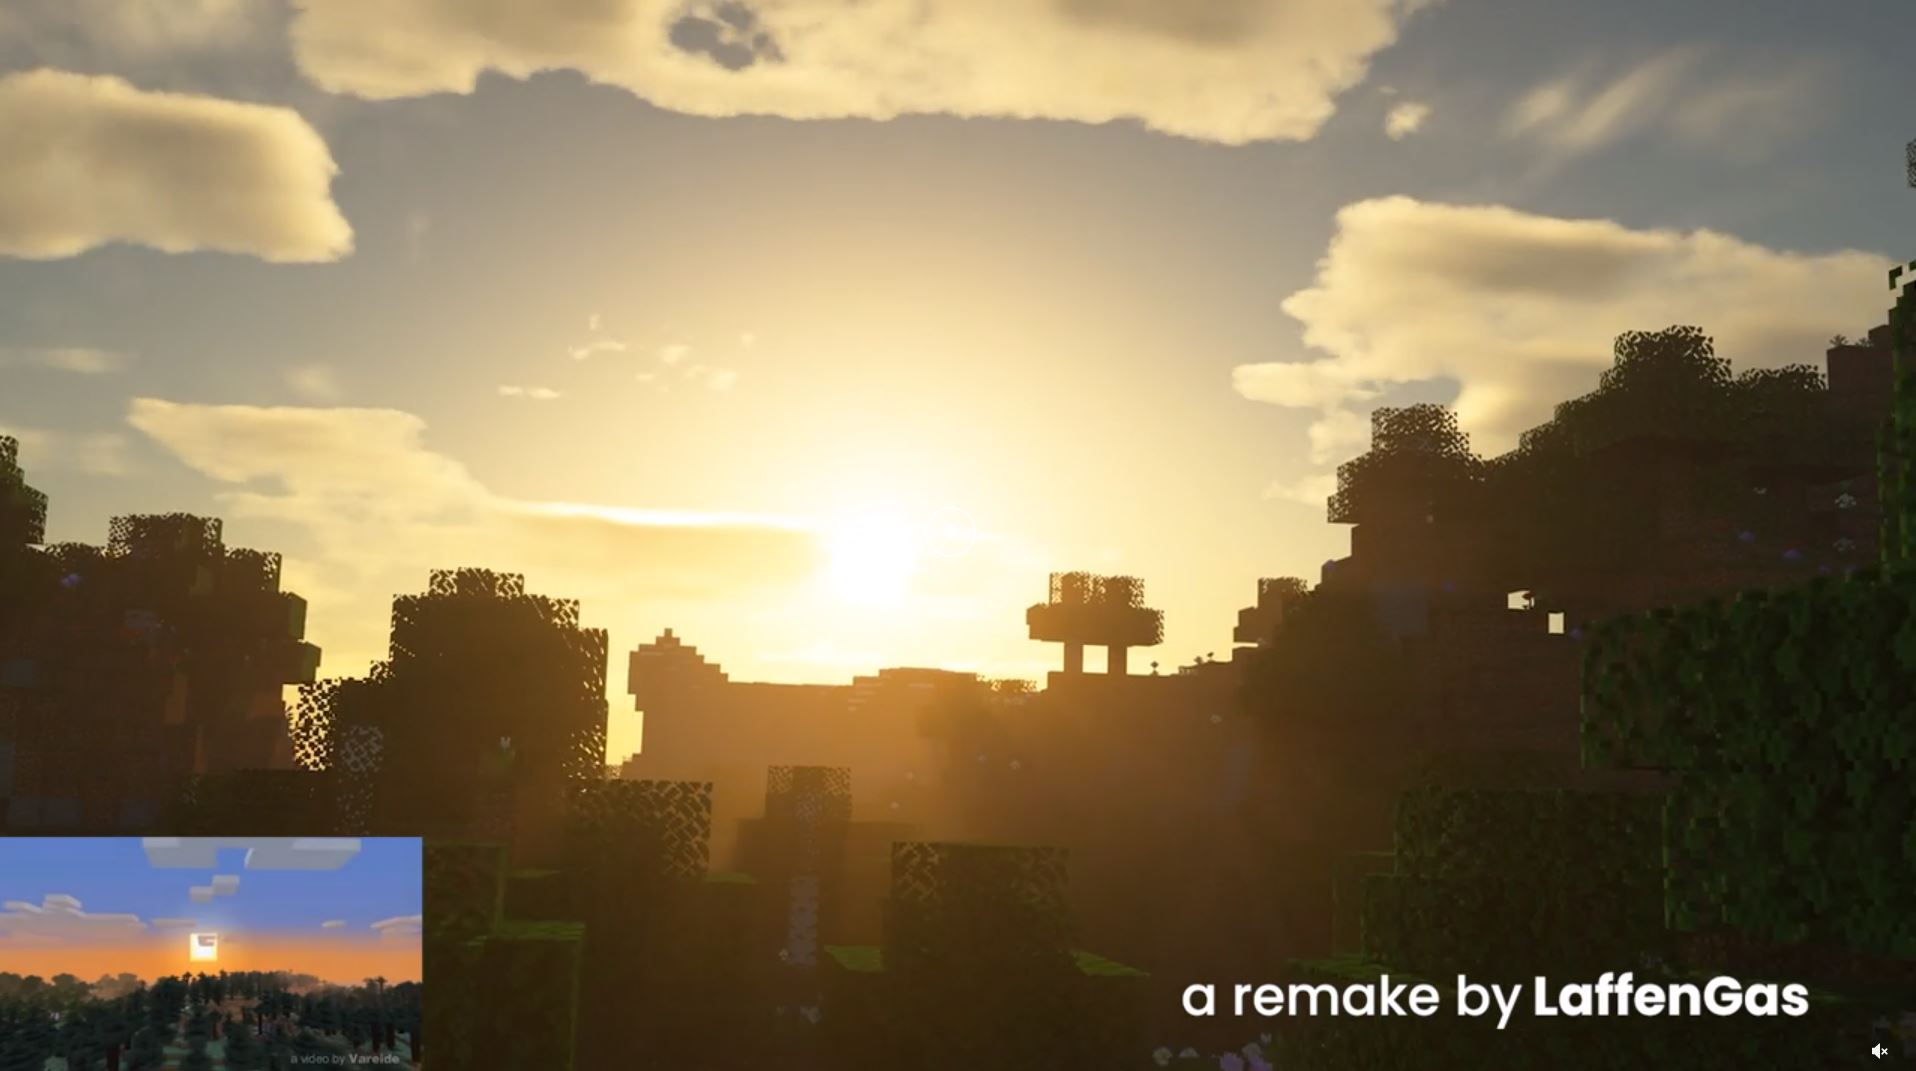 Reddit User LaffenGas Re-Created The Original 2011 Minecraft Trailer With RTX On